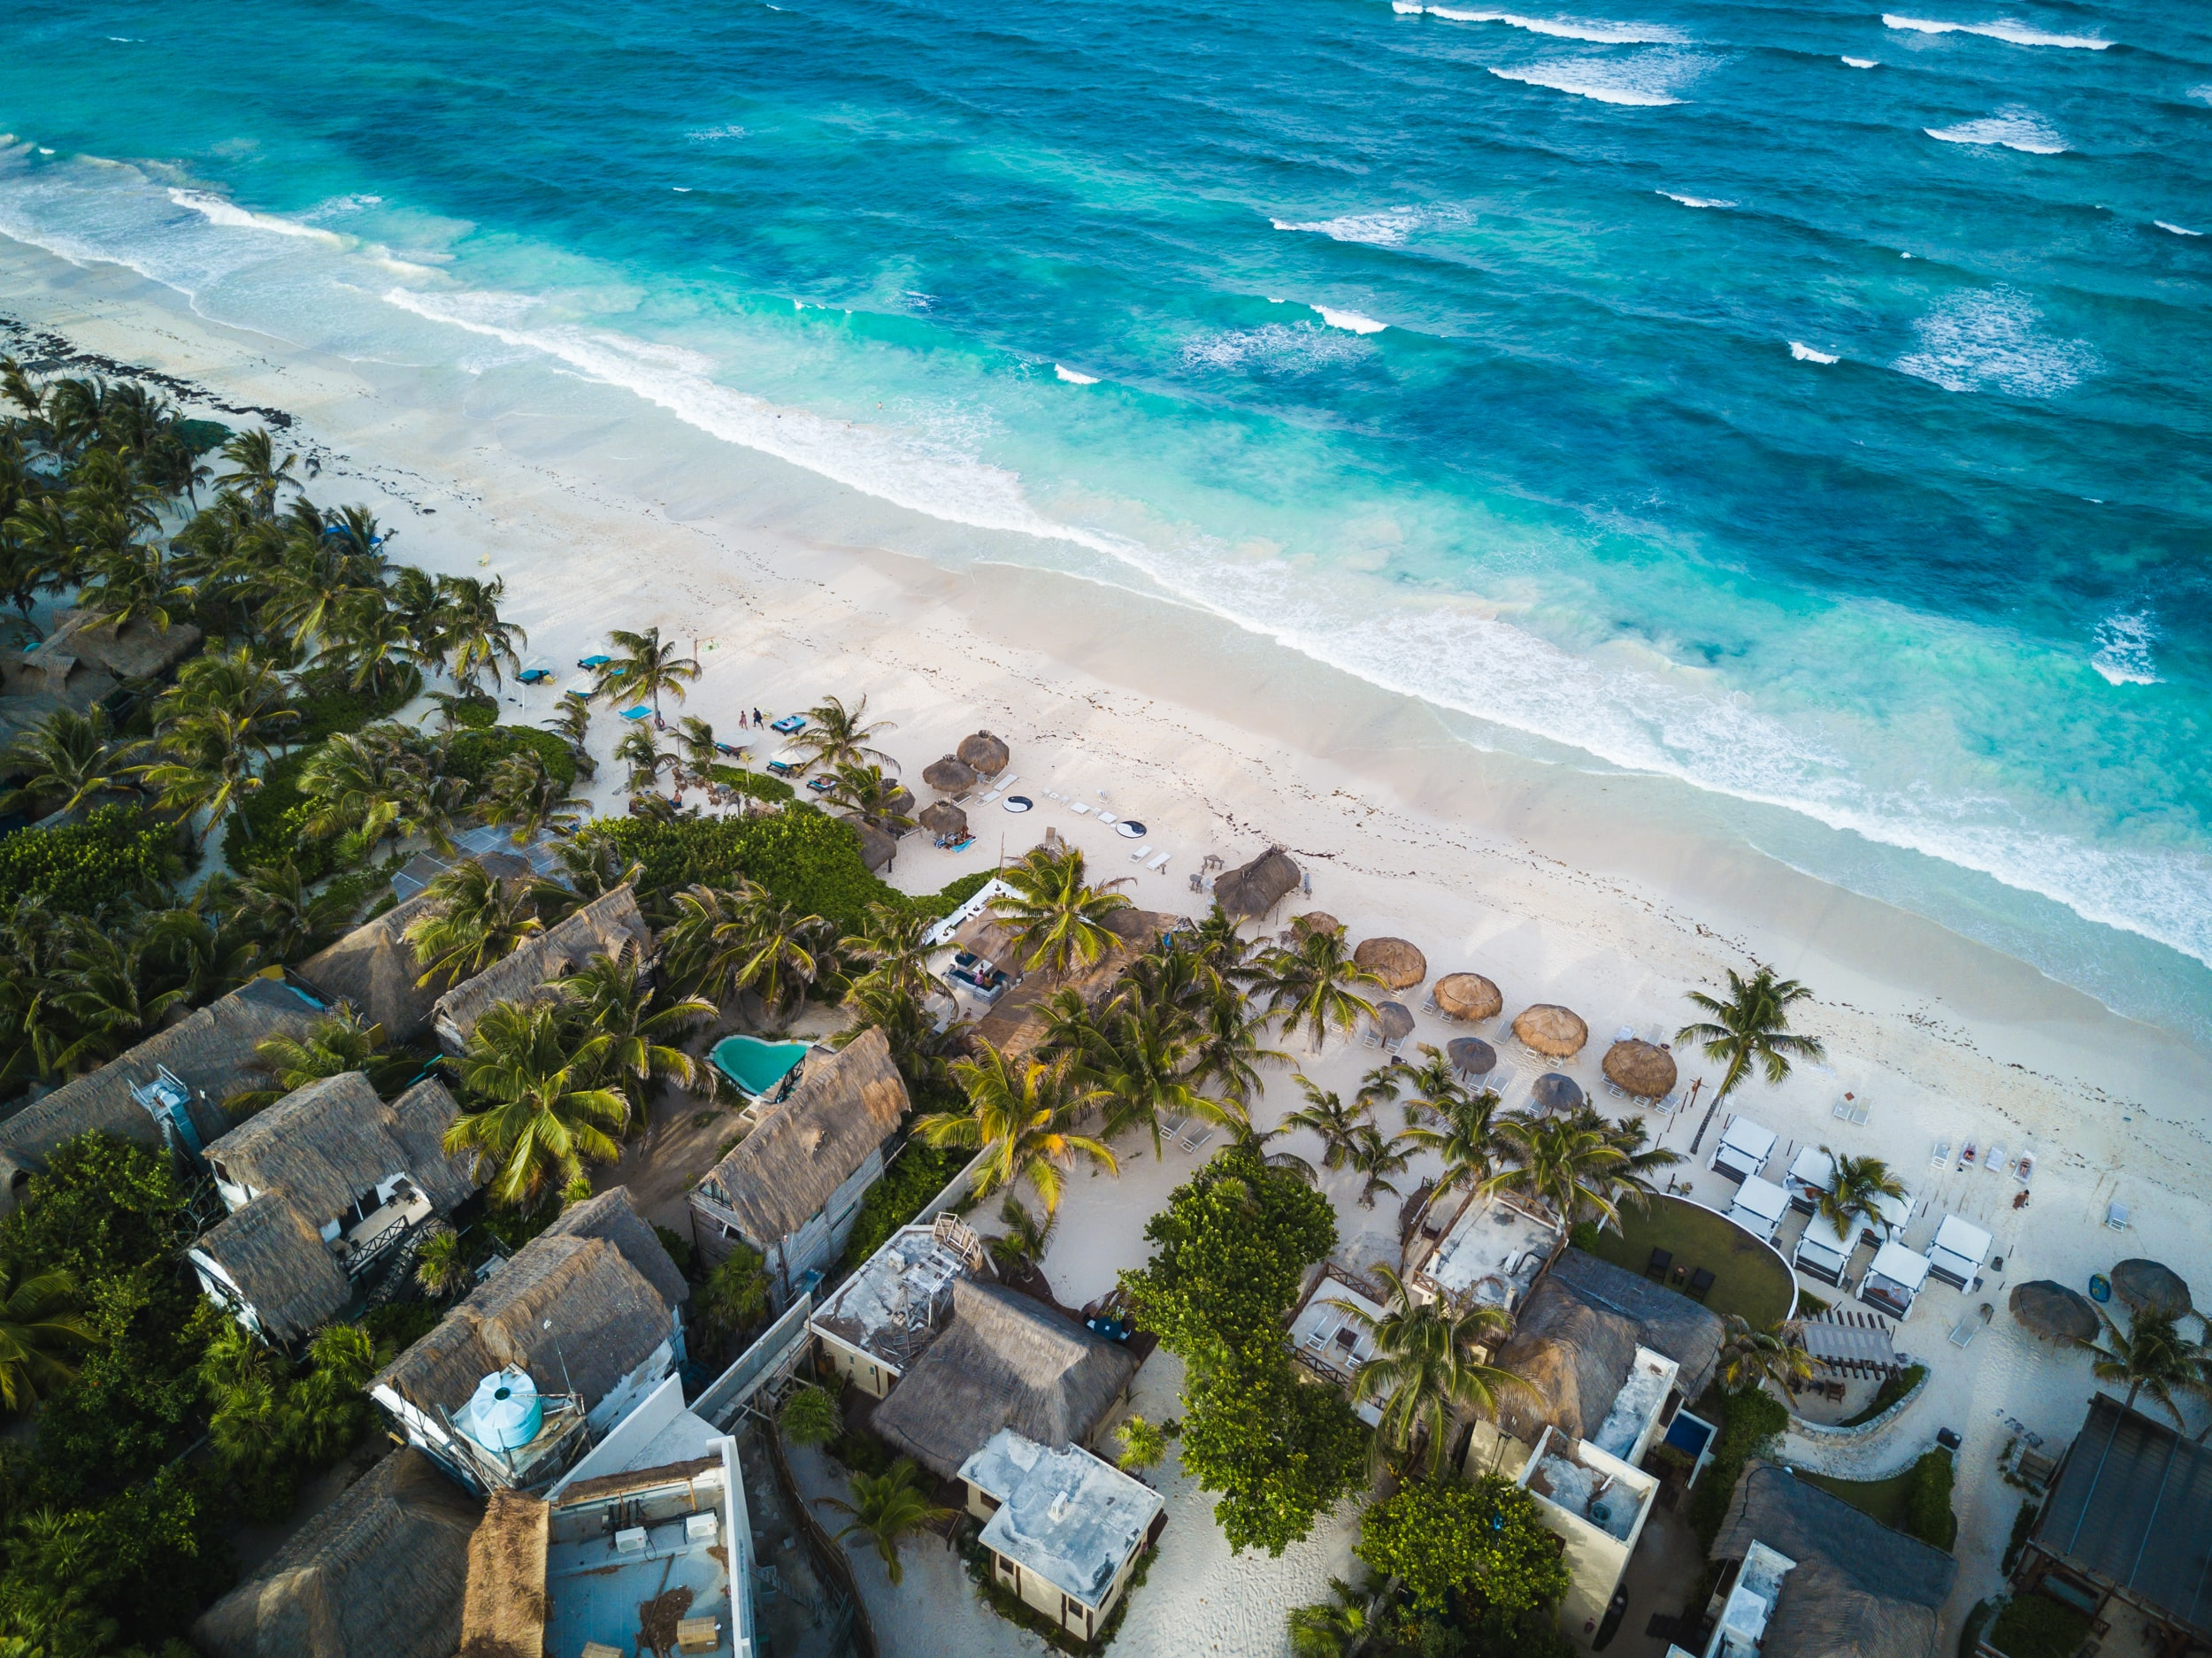 A drone shot of a resort, umbrellas, lounge chairs, and the ocean in Tulum, Mexico